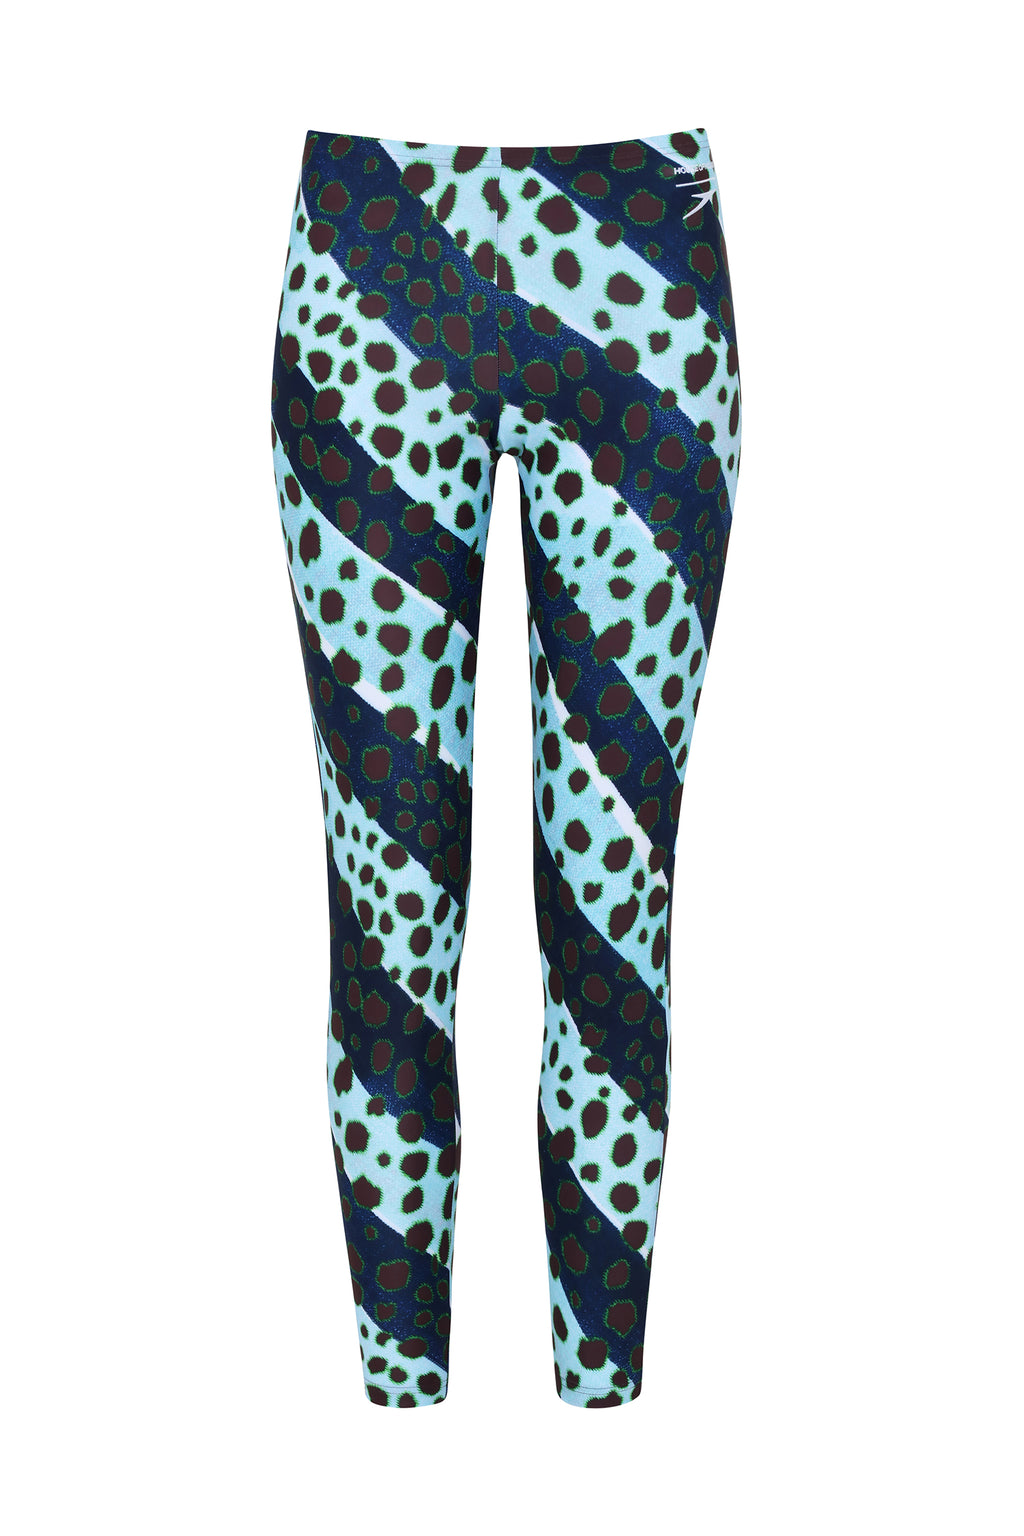 HOH X Speedo Muted Cheetah Stripe Leggings